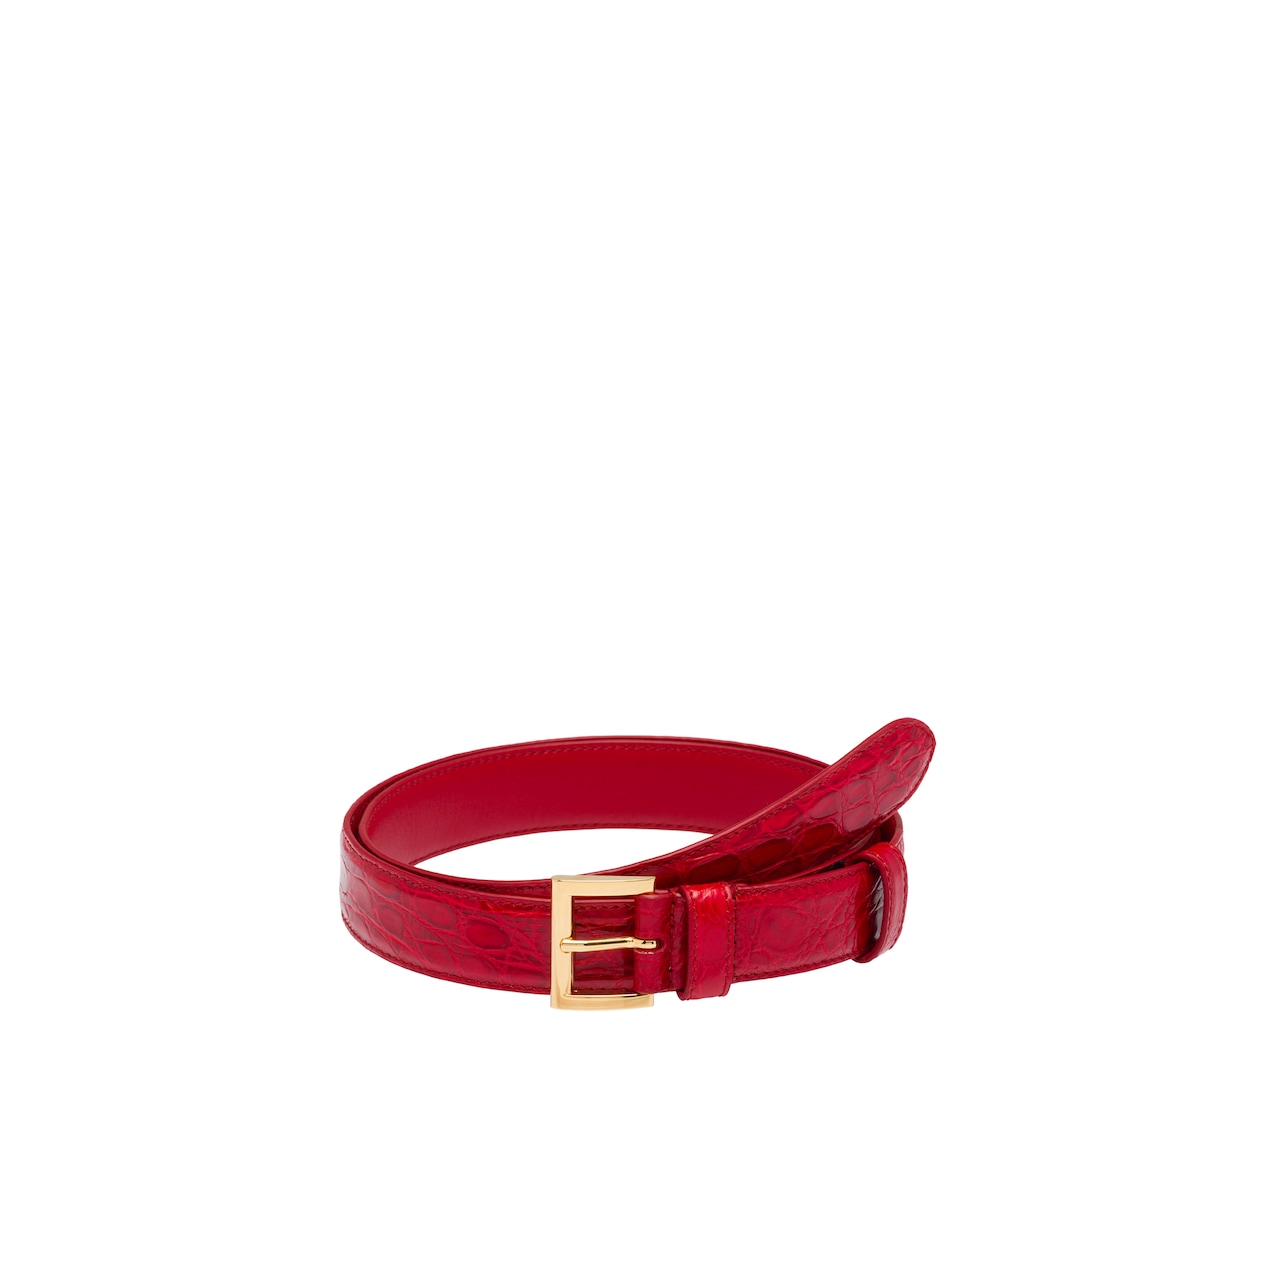 Prada Crocodile leather belt 1